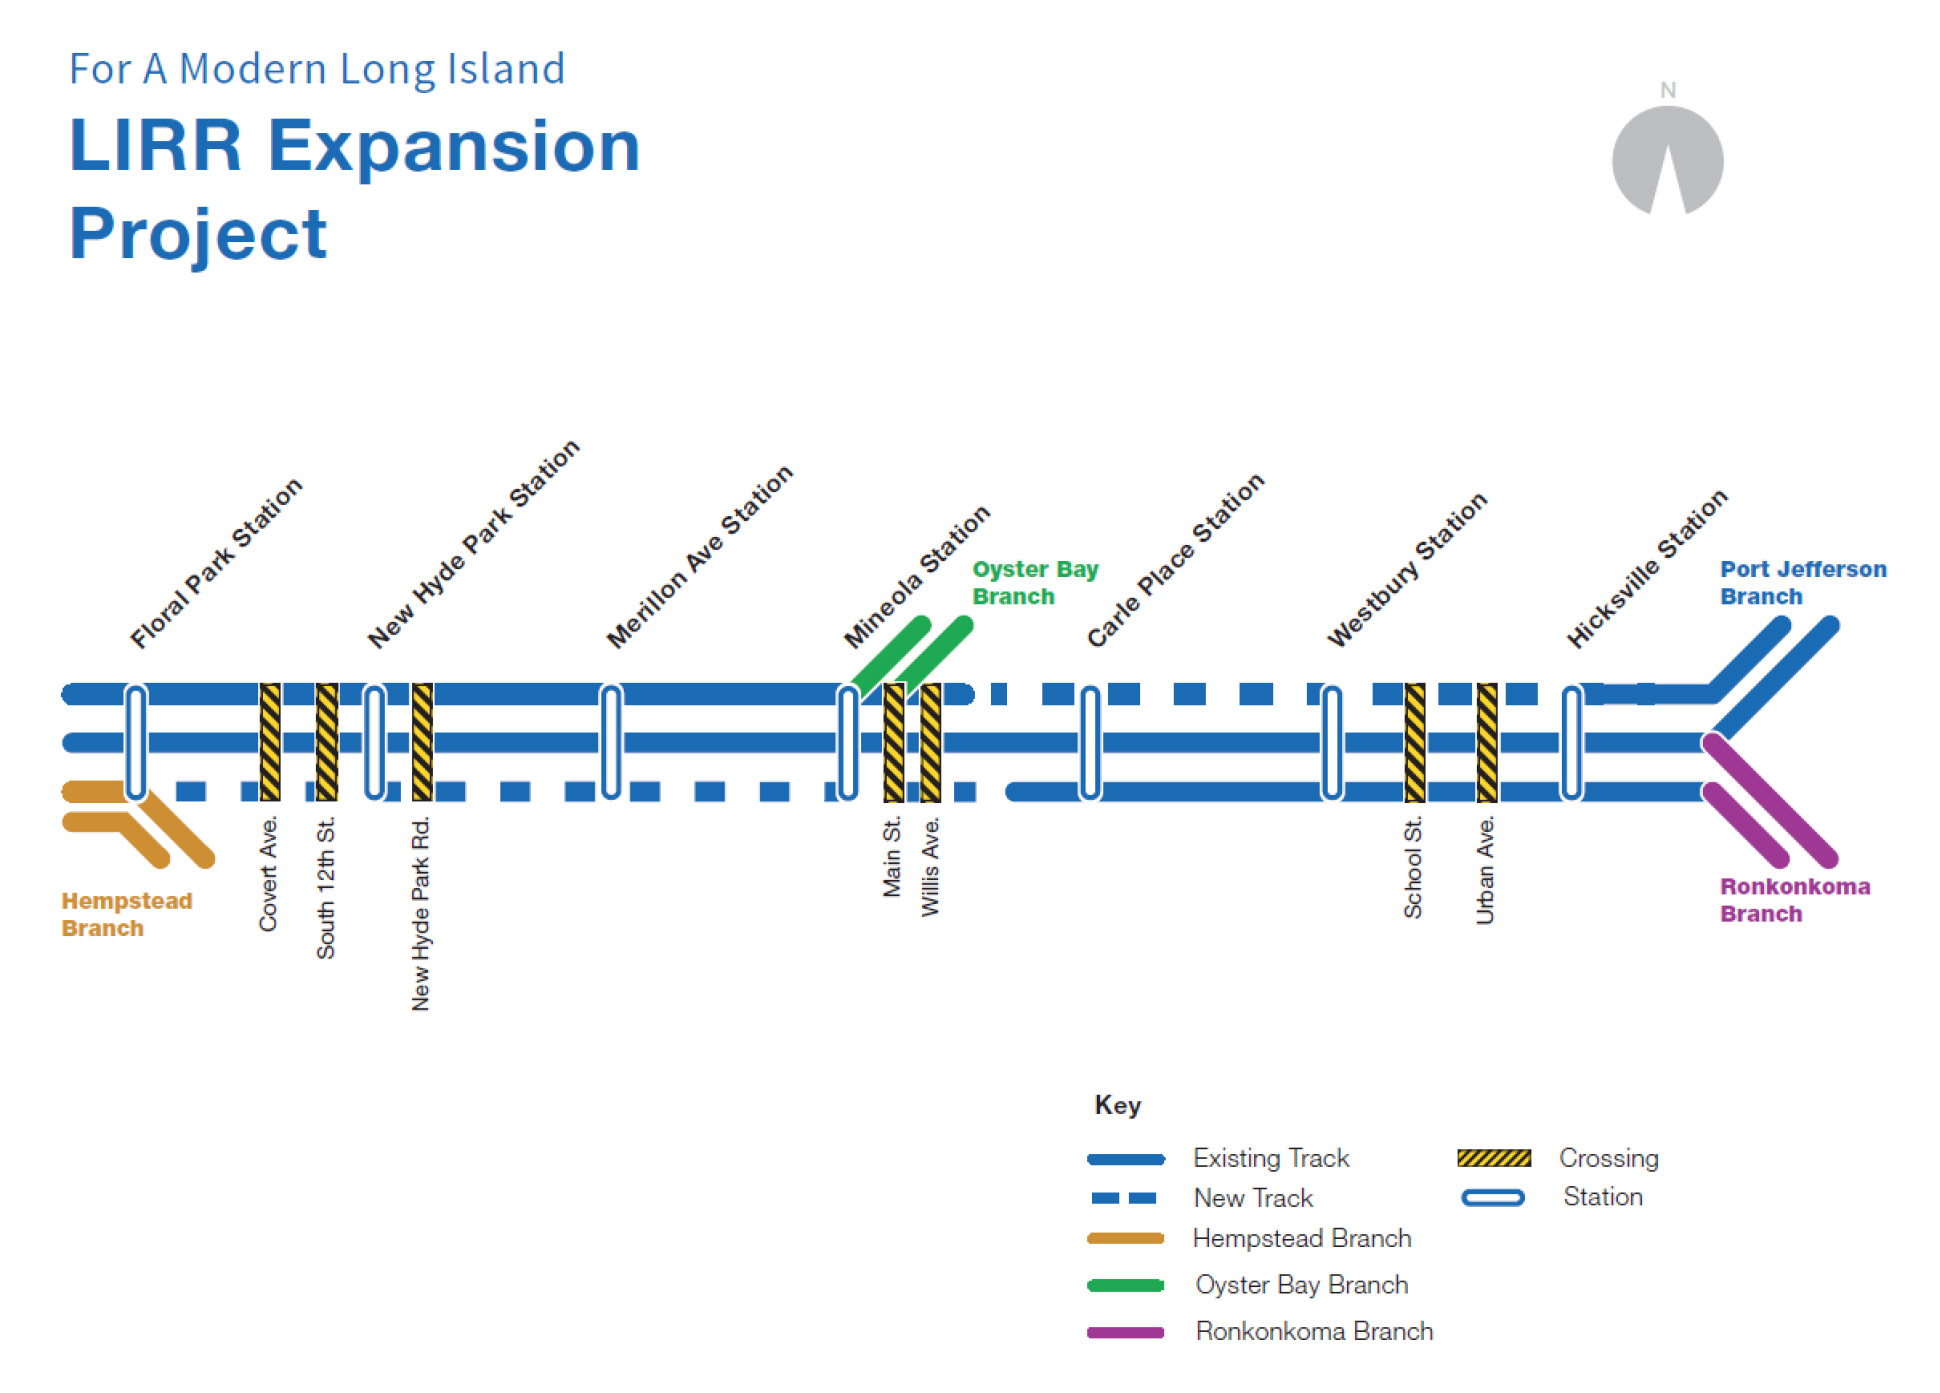 LIRR Expansion Project Diagram